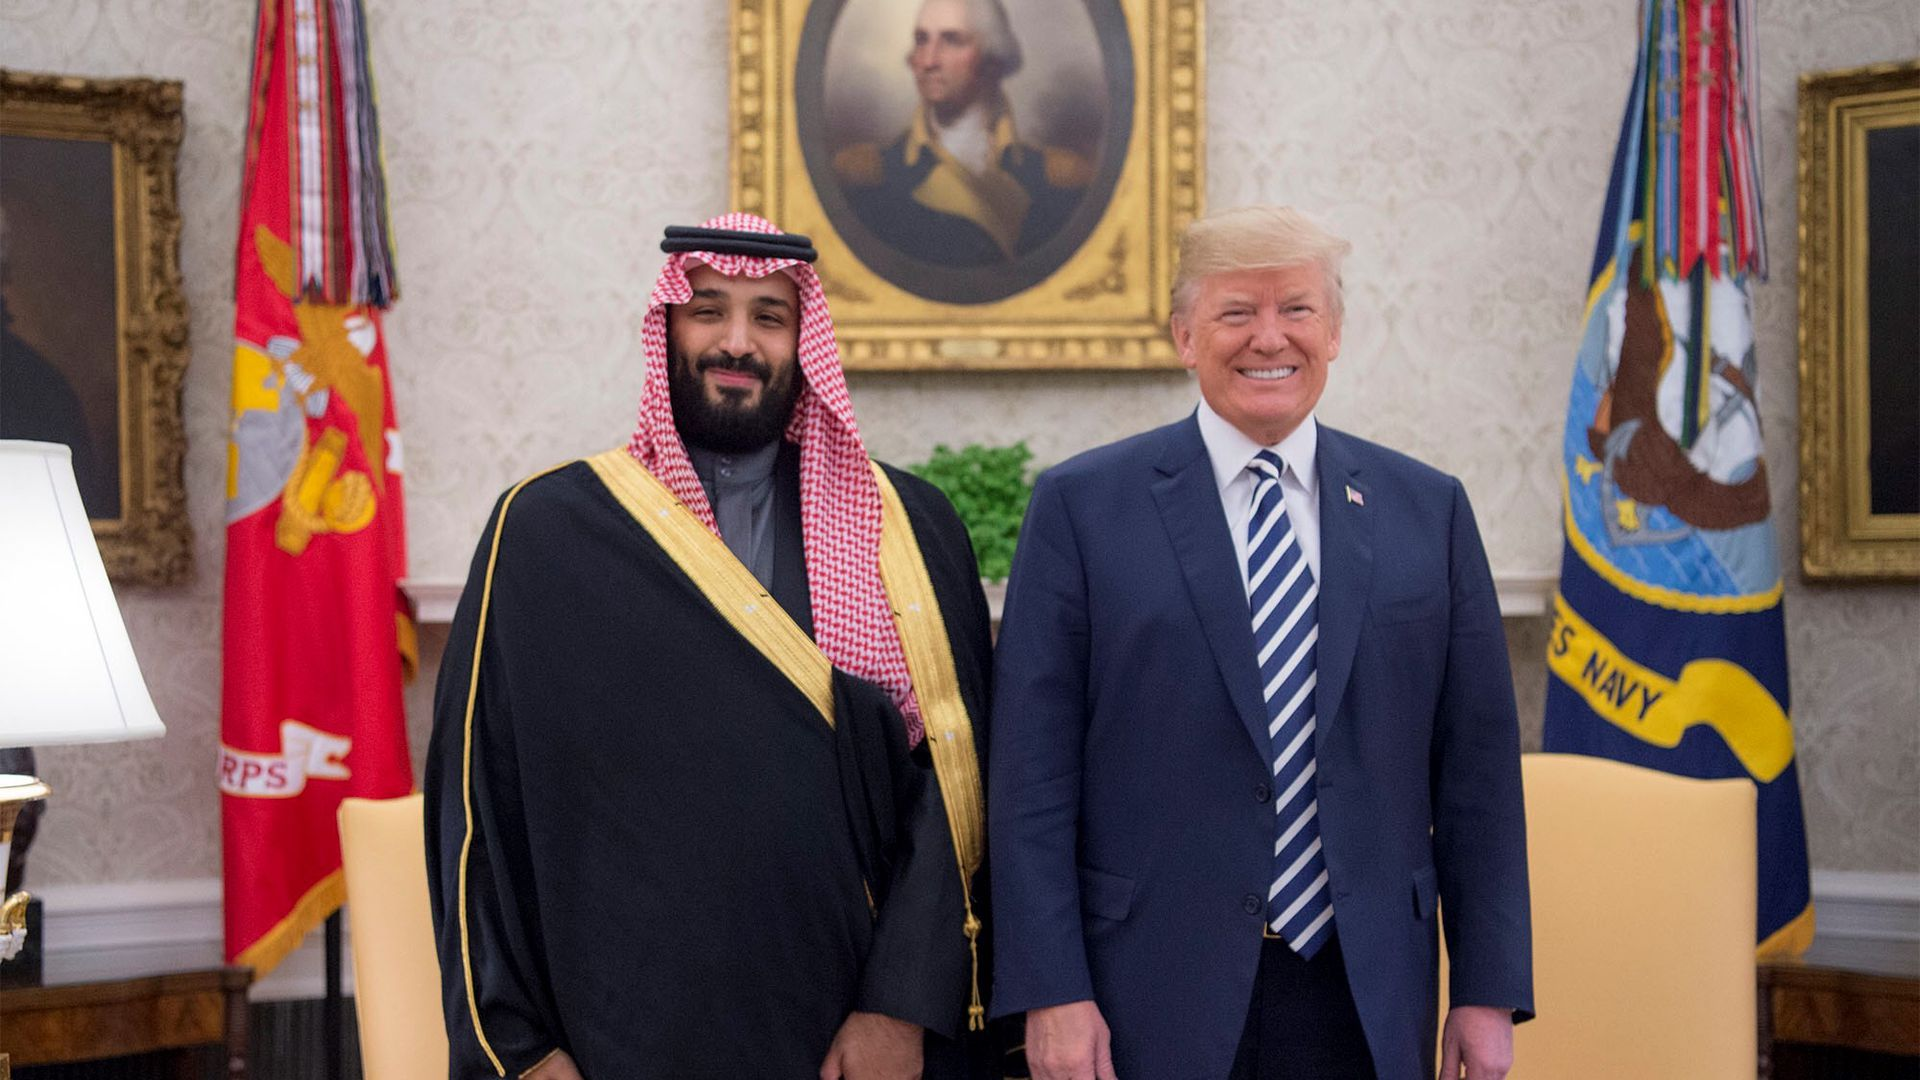 Saudi Crown Prince Mohammed bin Salman stands beside President Trump at the White House